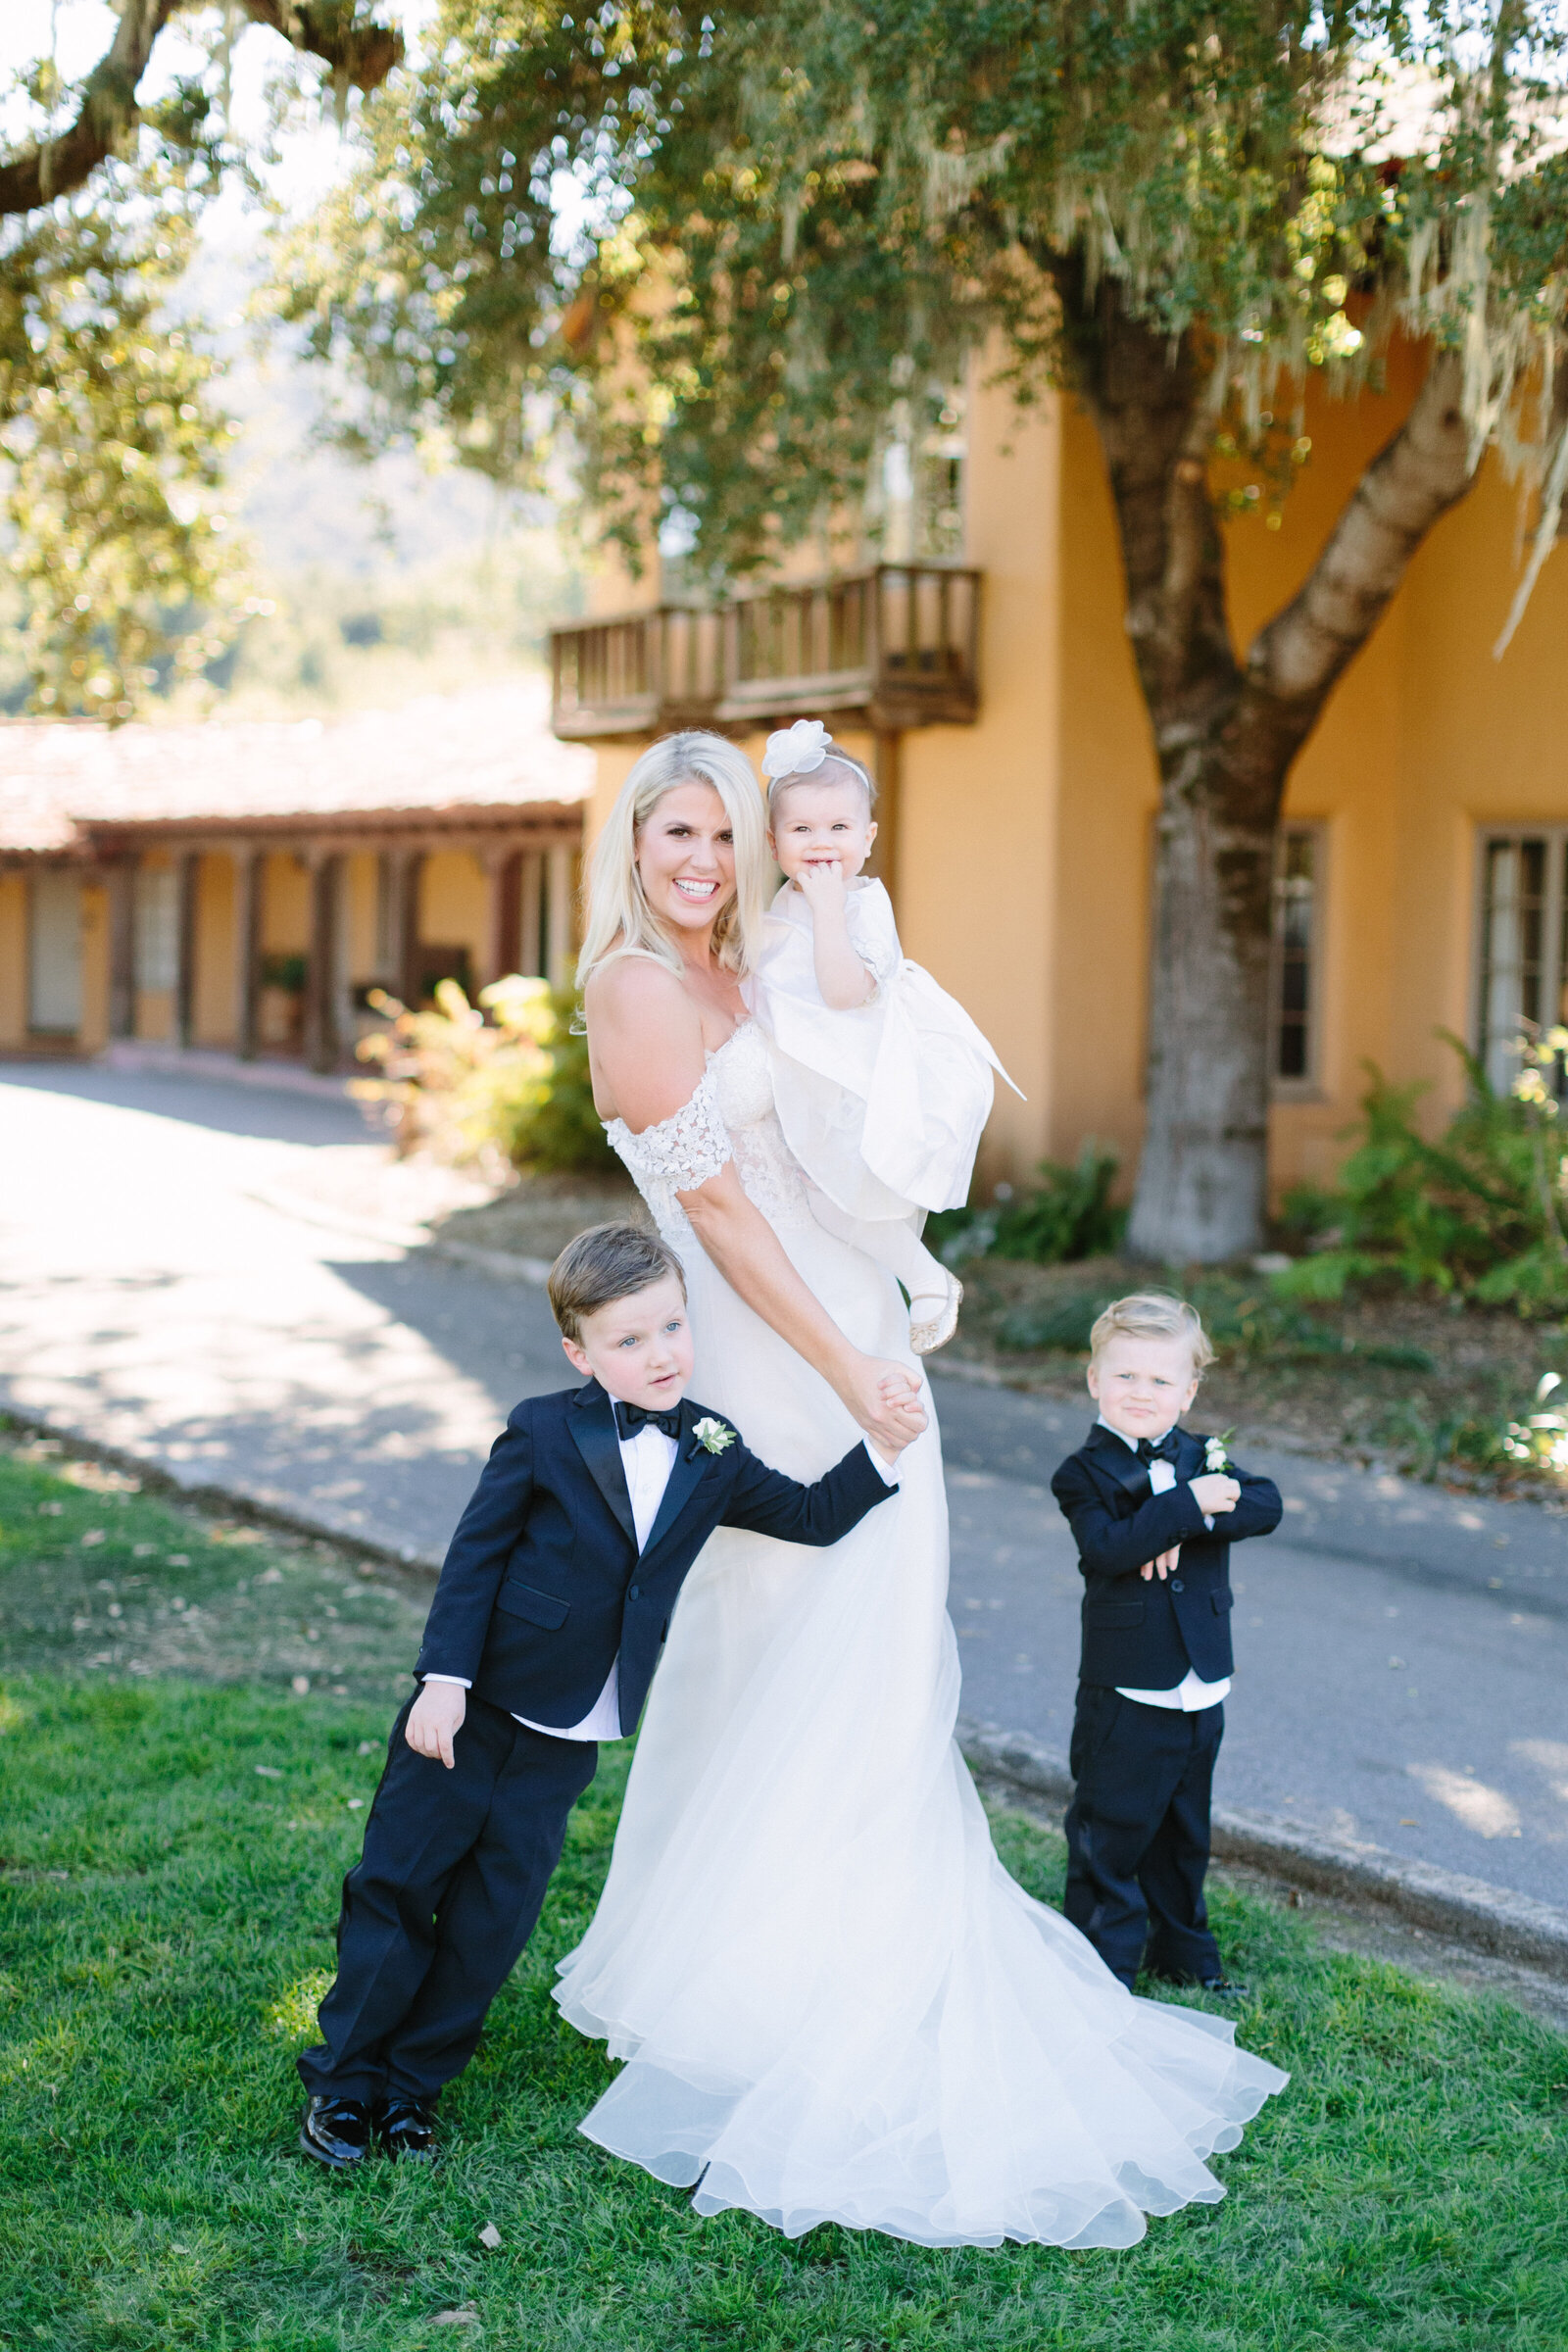 larissa-cleveland-elope-eleopement-intimate-wedding-photographer-san-francisco-napa-carmel-087